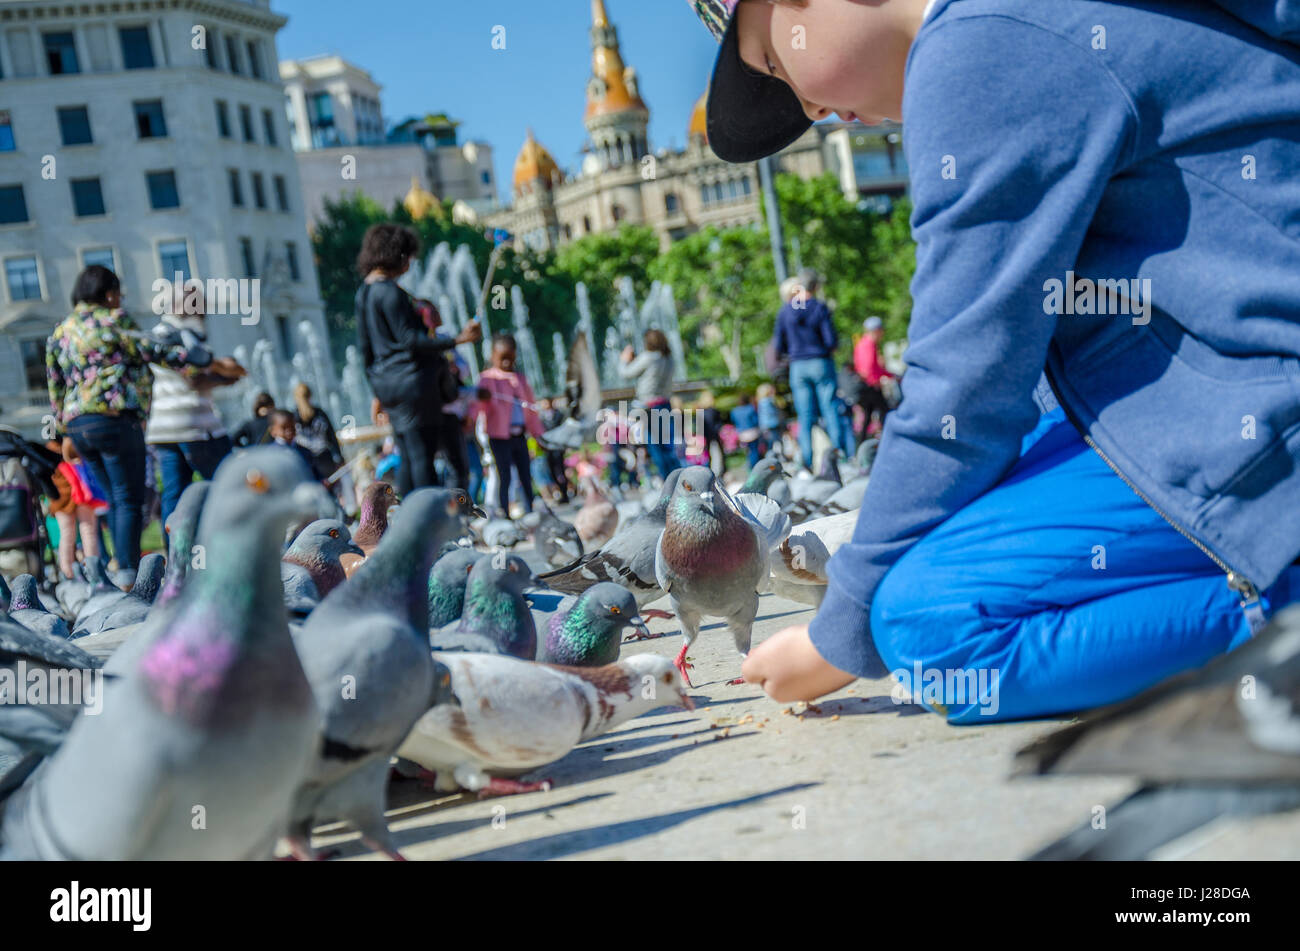 a-young-boy-feeds-pigeons-in-the-plaa-de